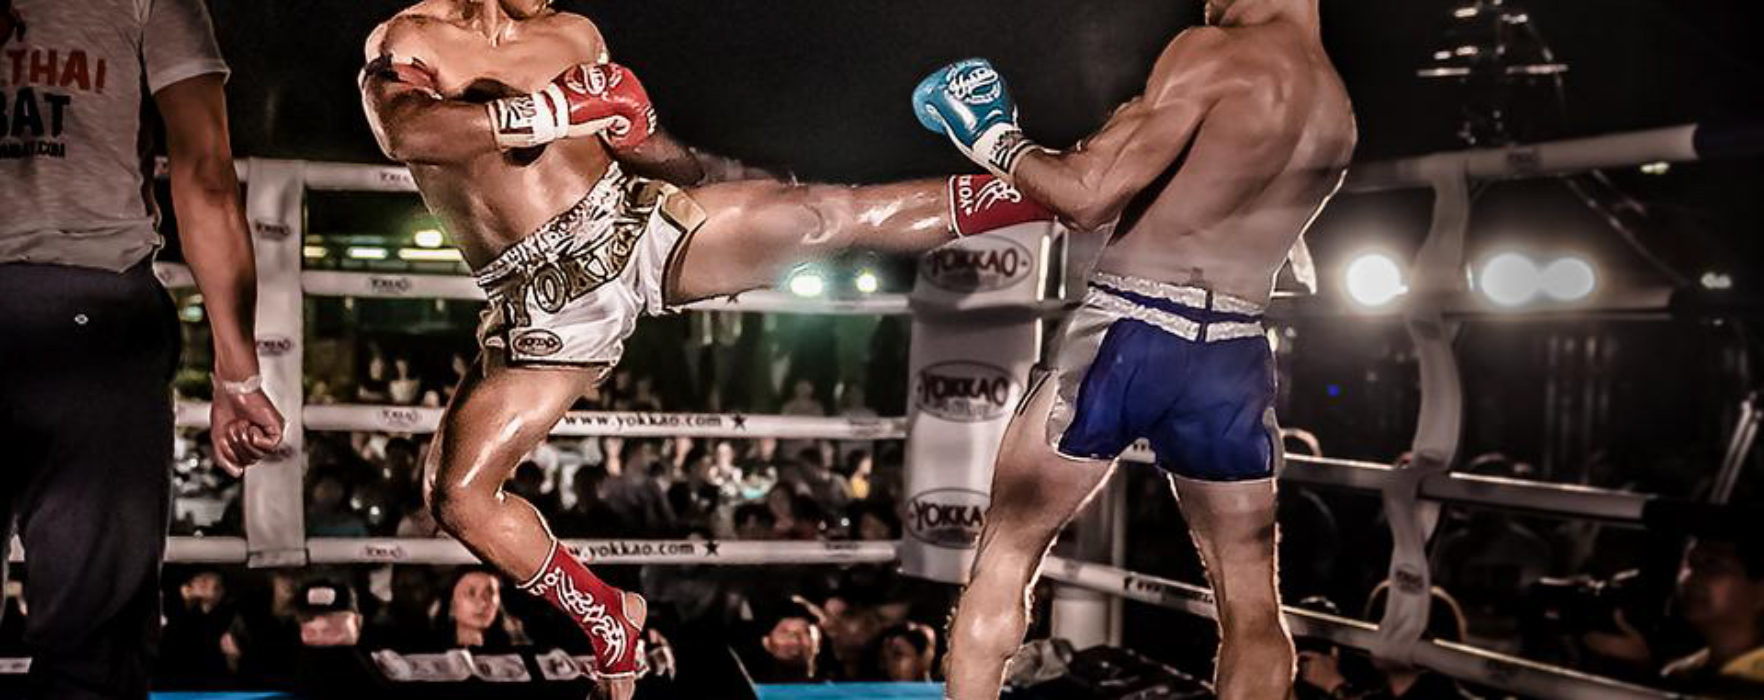 Results & Video: Yokkao 21&22 – Saenchai, Petchmorakot, Topic, Hlali, etc. – 28/10/16